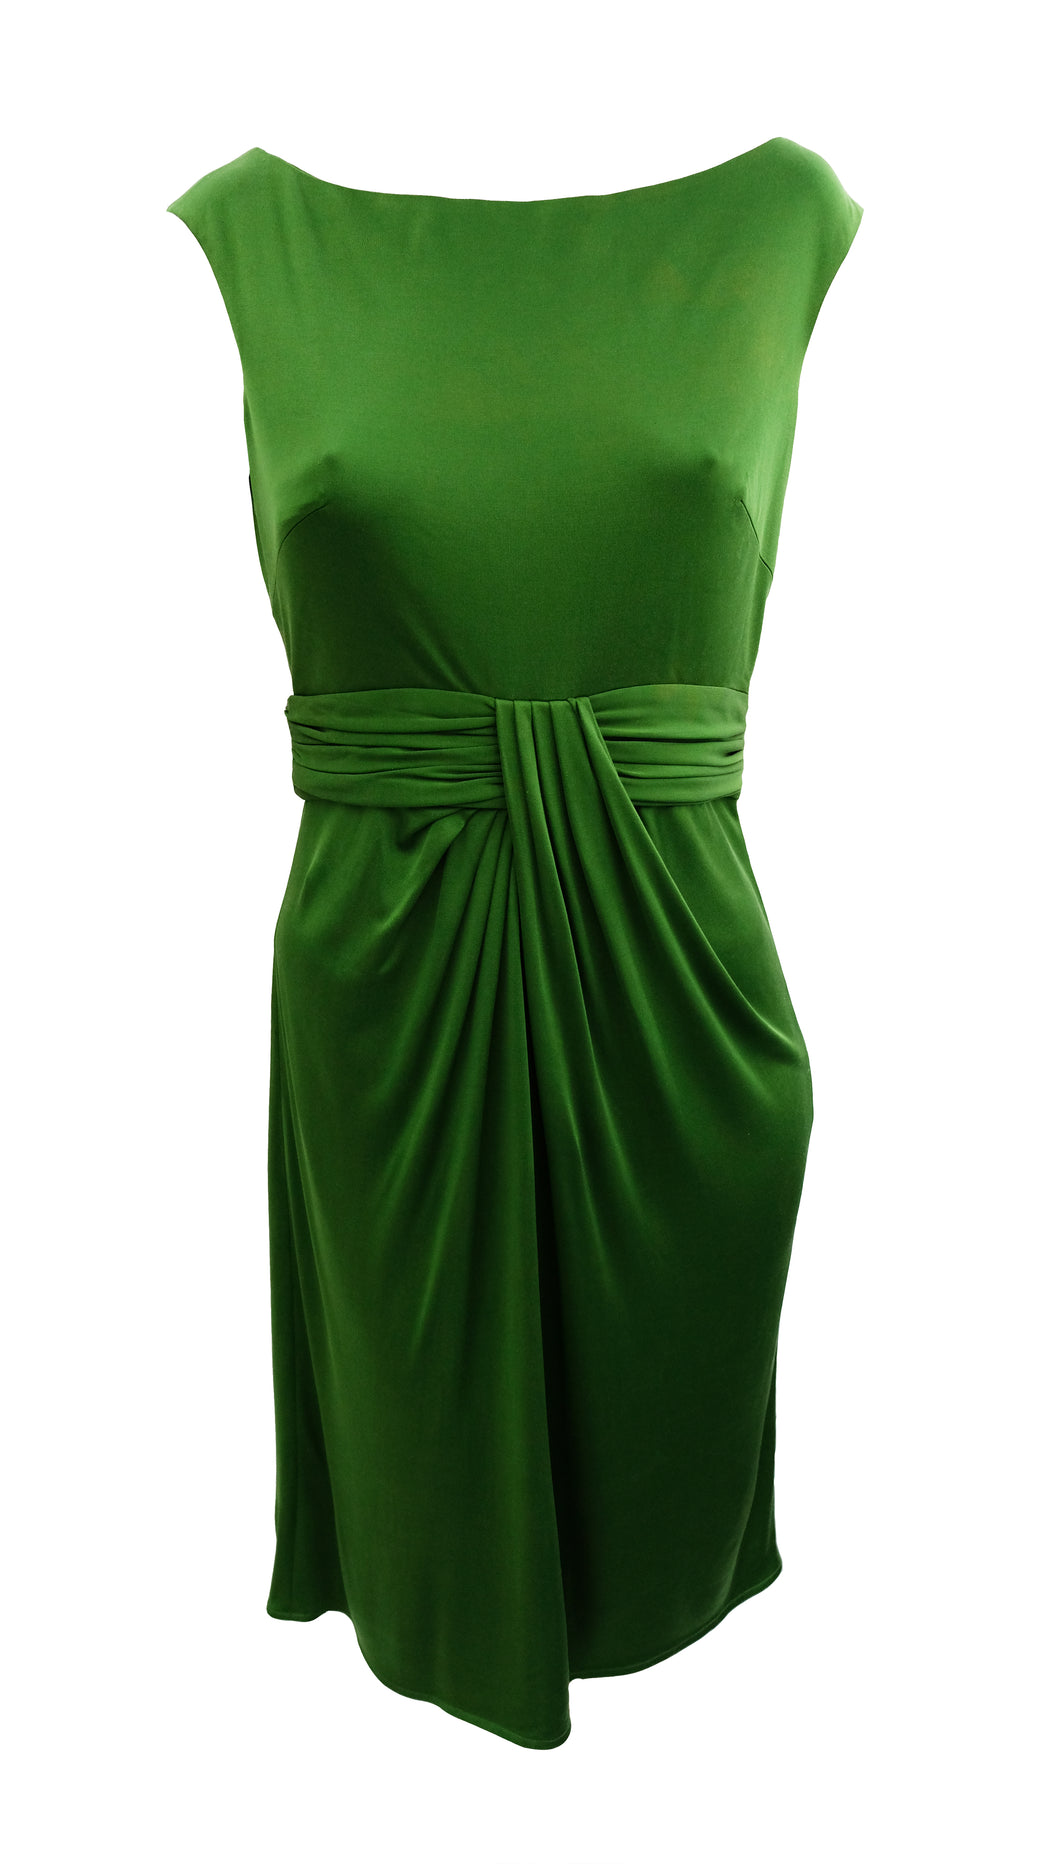 Issa Day Dress in Green Silk Jersey, UK12